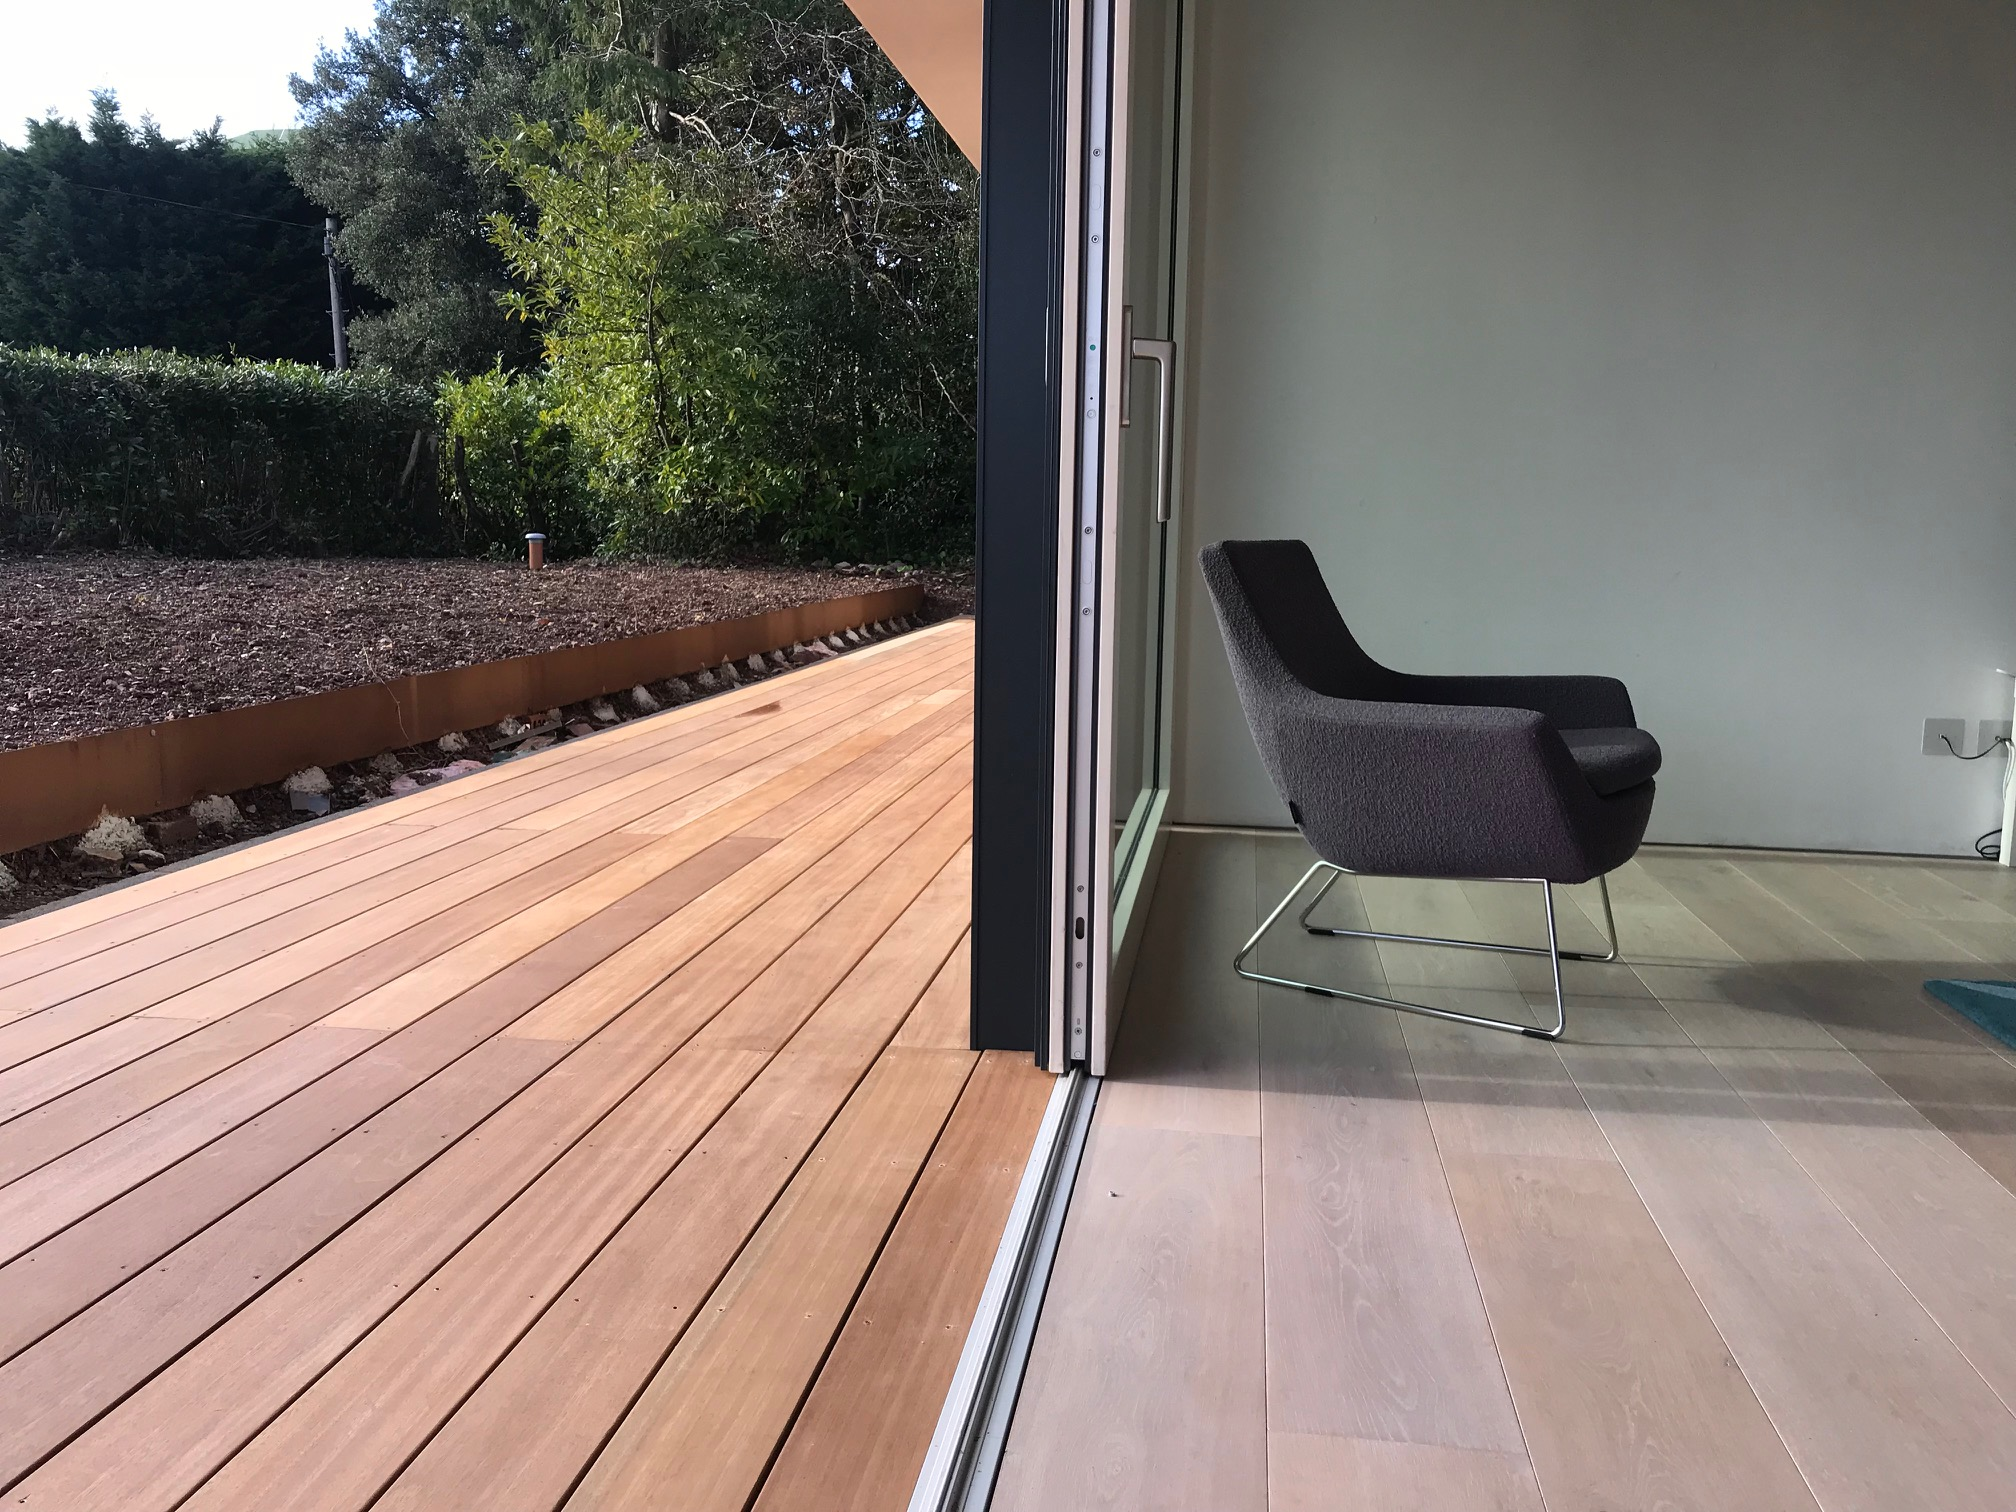 Level threshold to decking